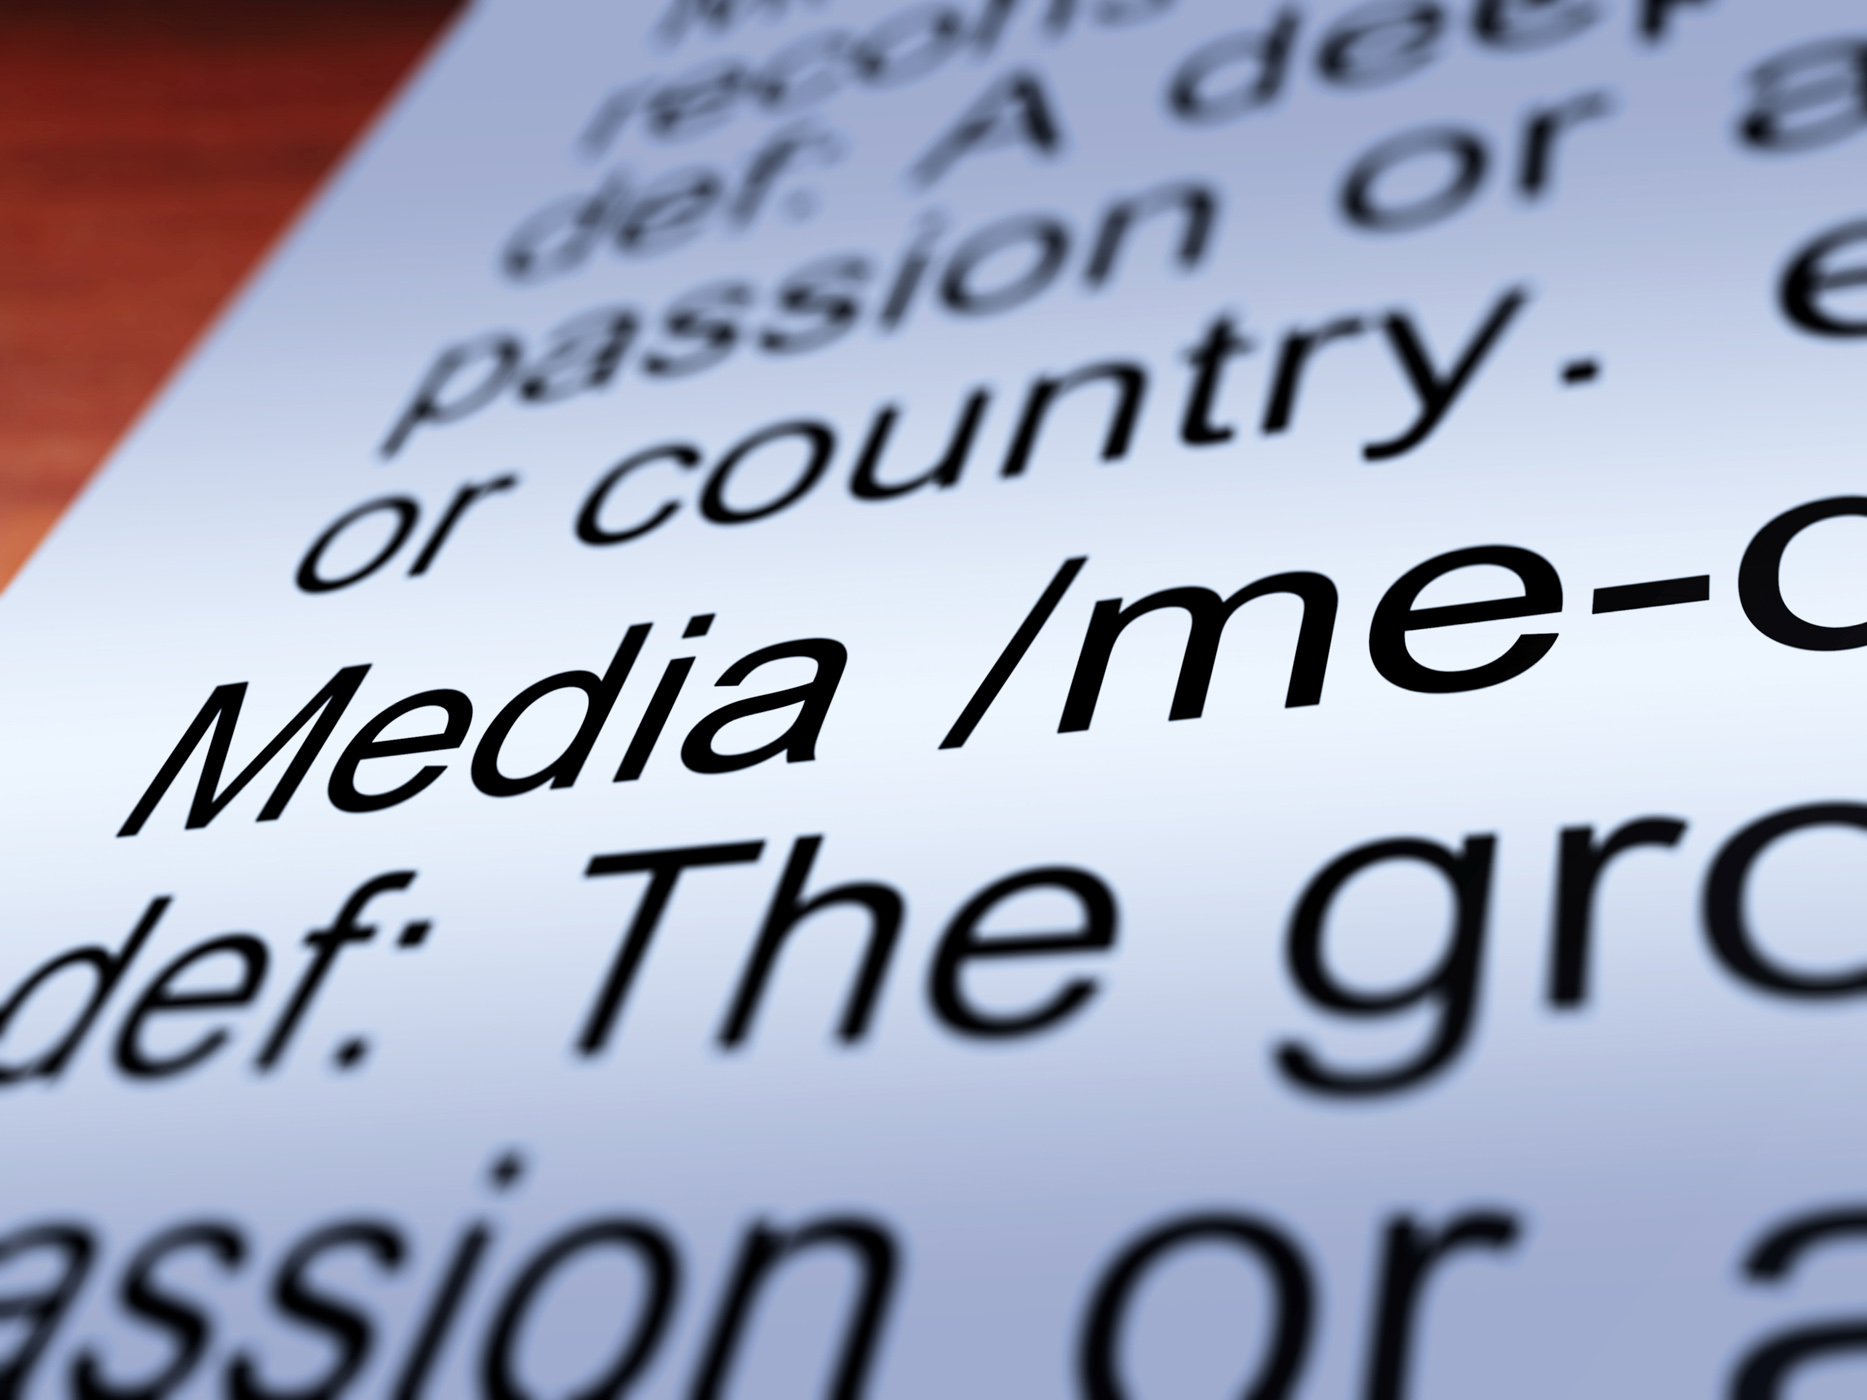 Media Definition Closeup Showing Communication, Ads, Marketing, TV, Television, HQ Photo